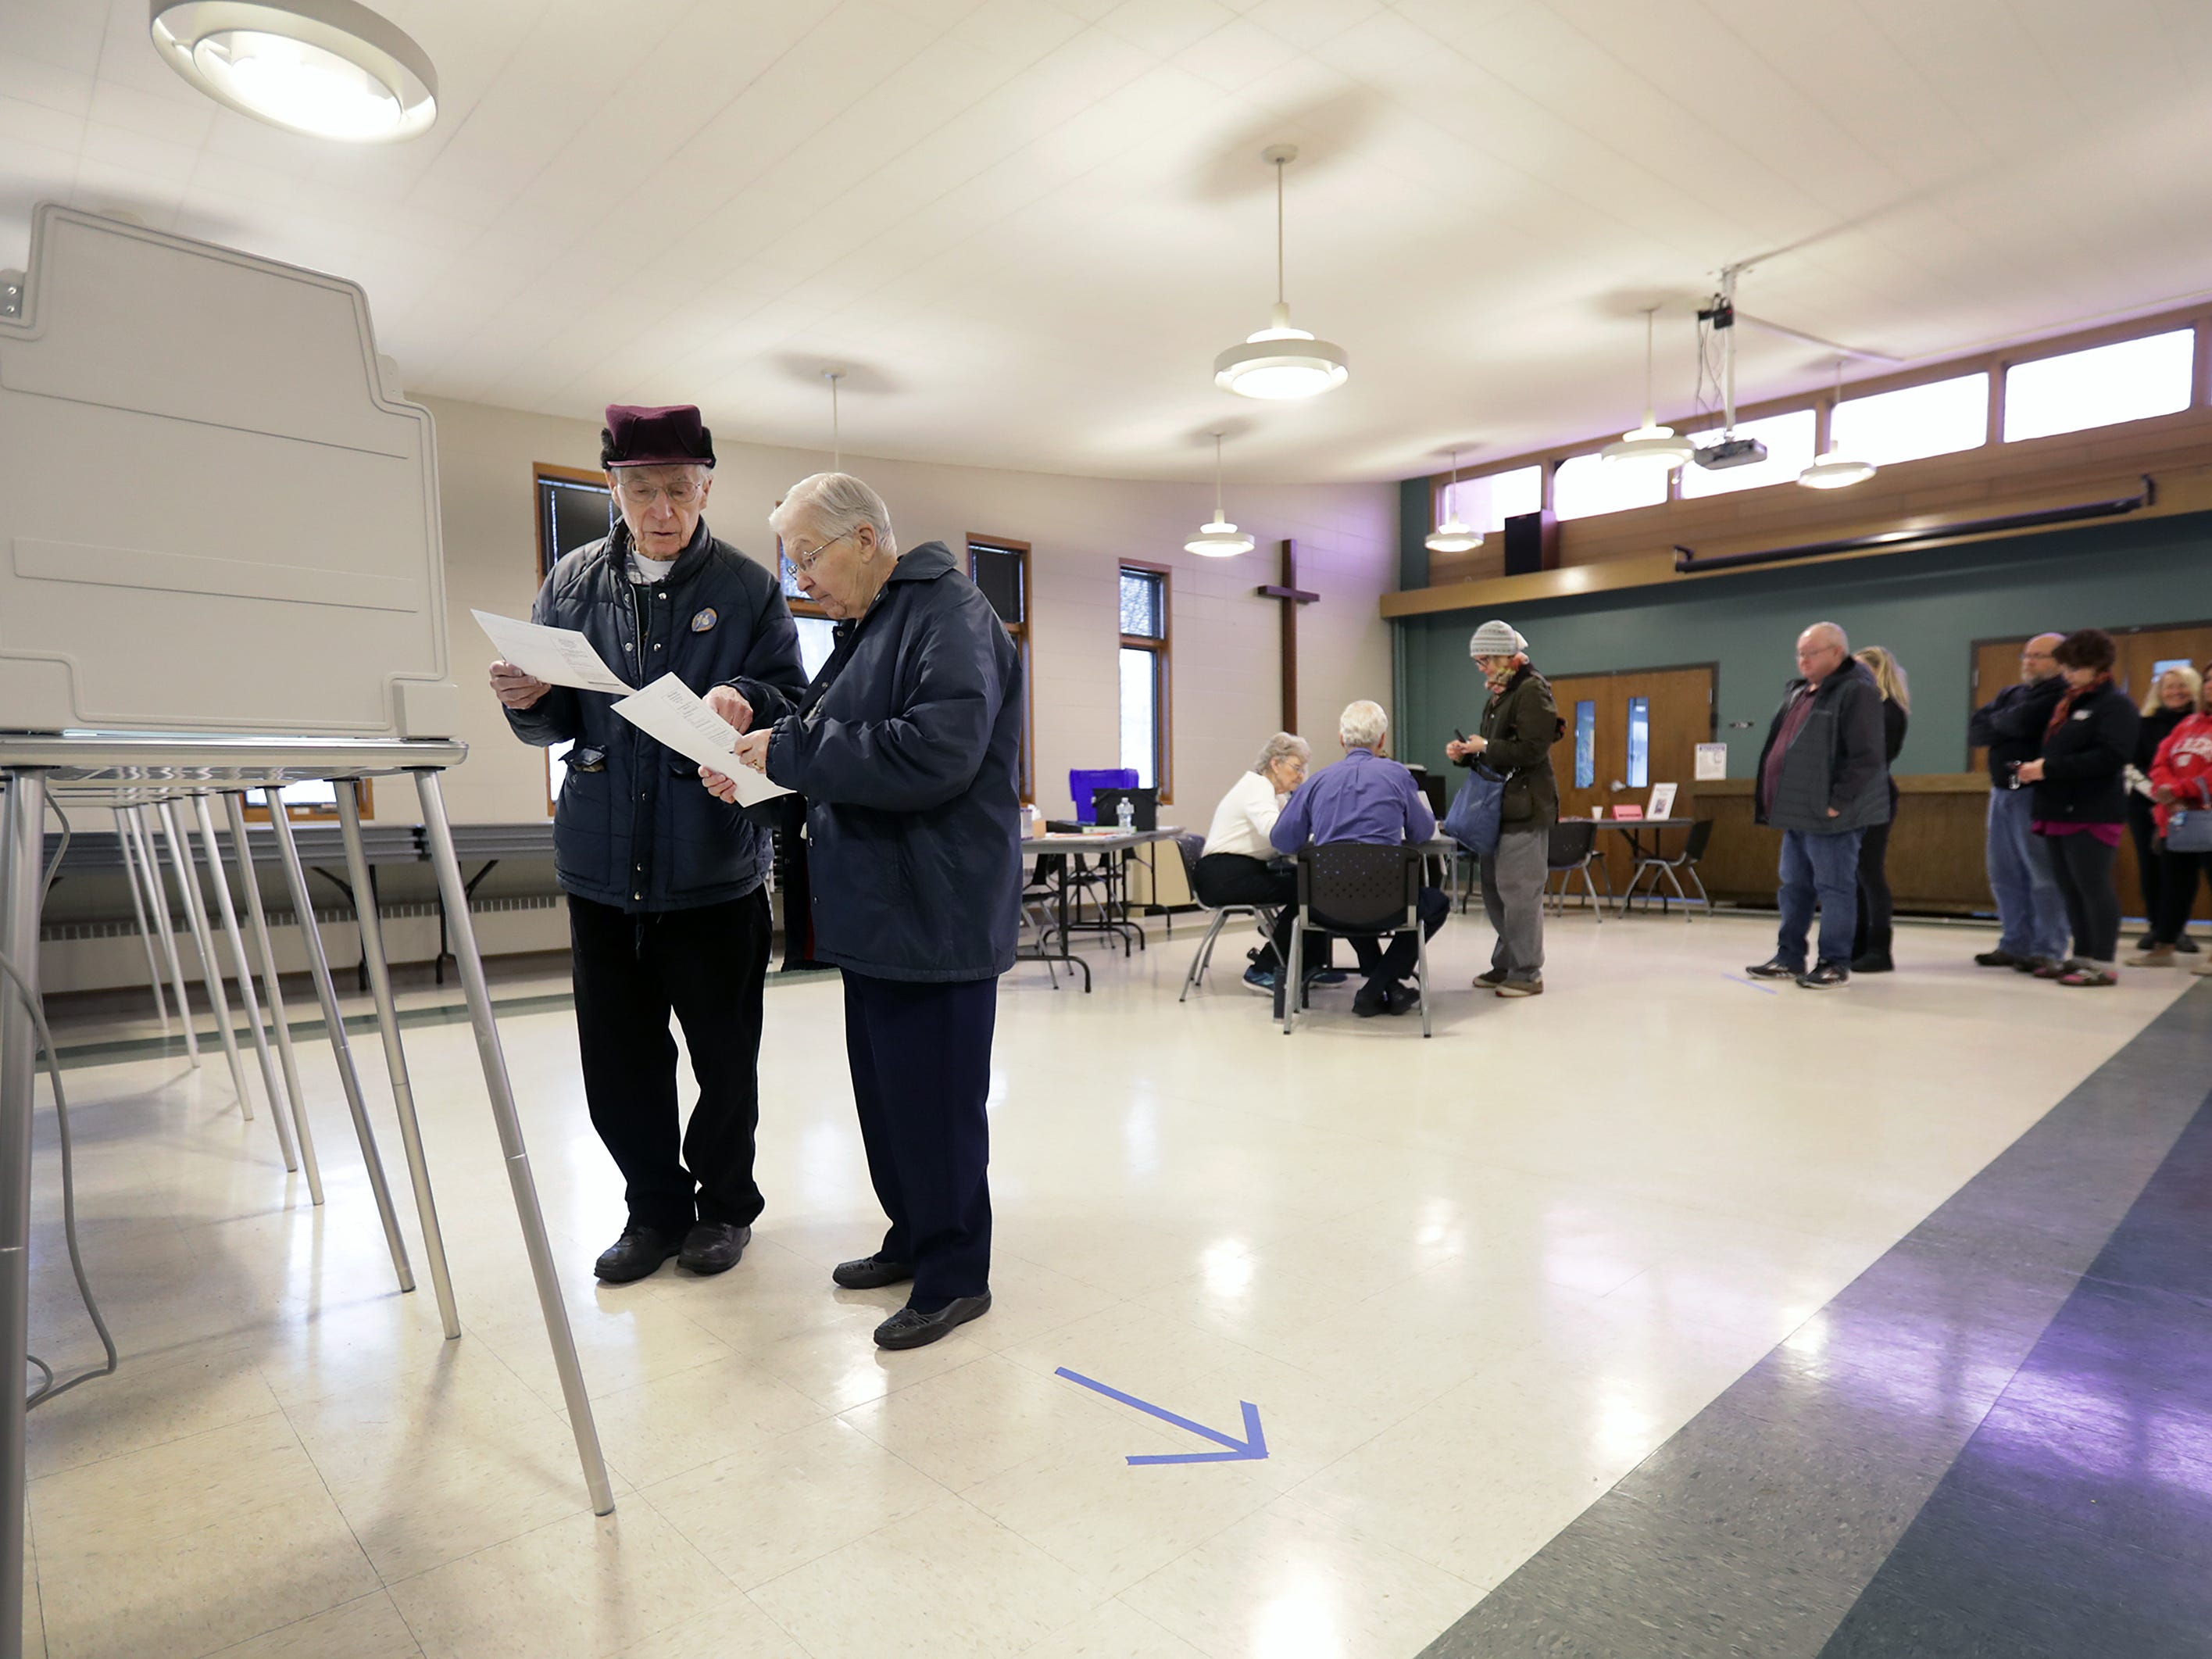 Jim and Dorothy Francart look over their ballots before filling them out as voters head to the polls at Peace Lutheran Church on Tuesday, April 2, 2019, in Neenah, Wis.